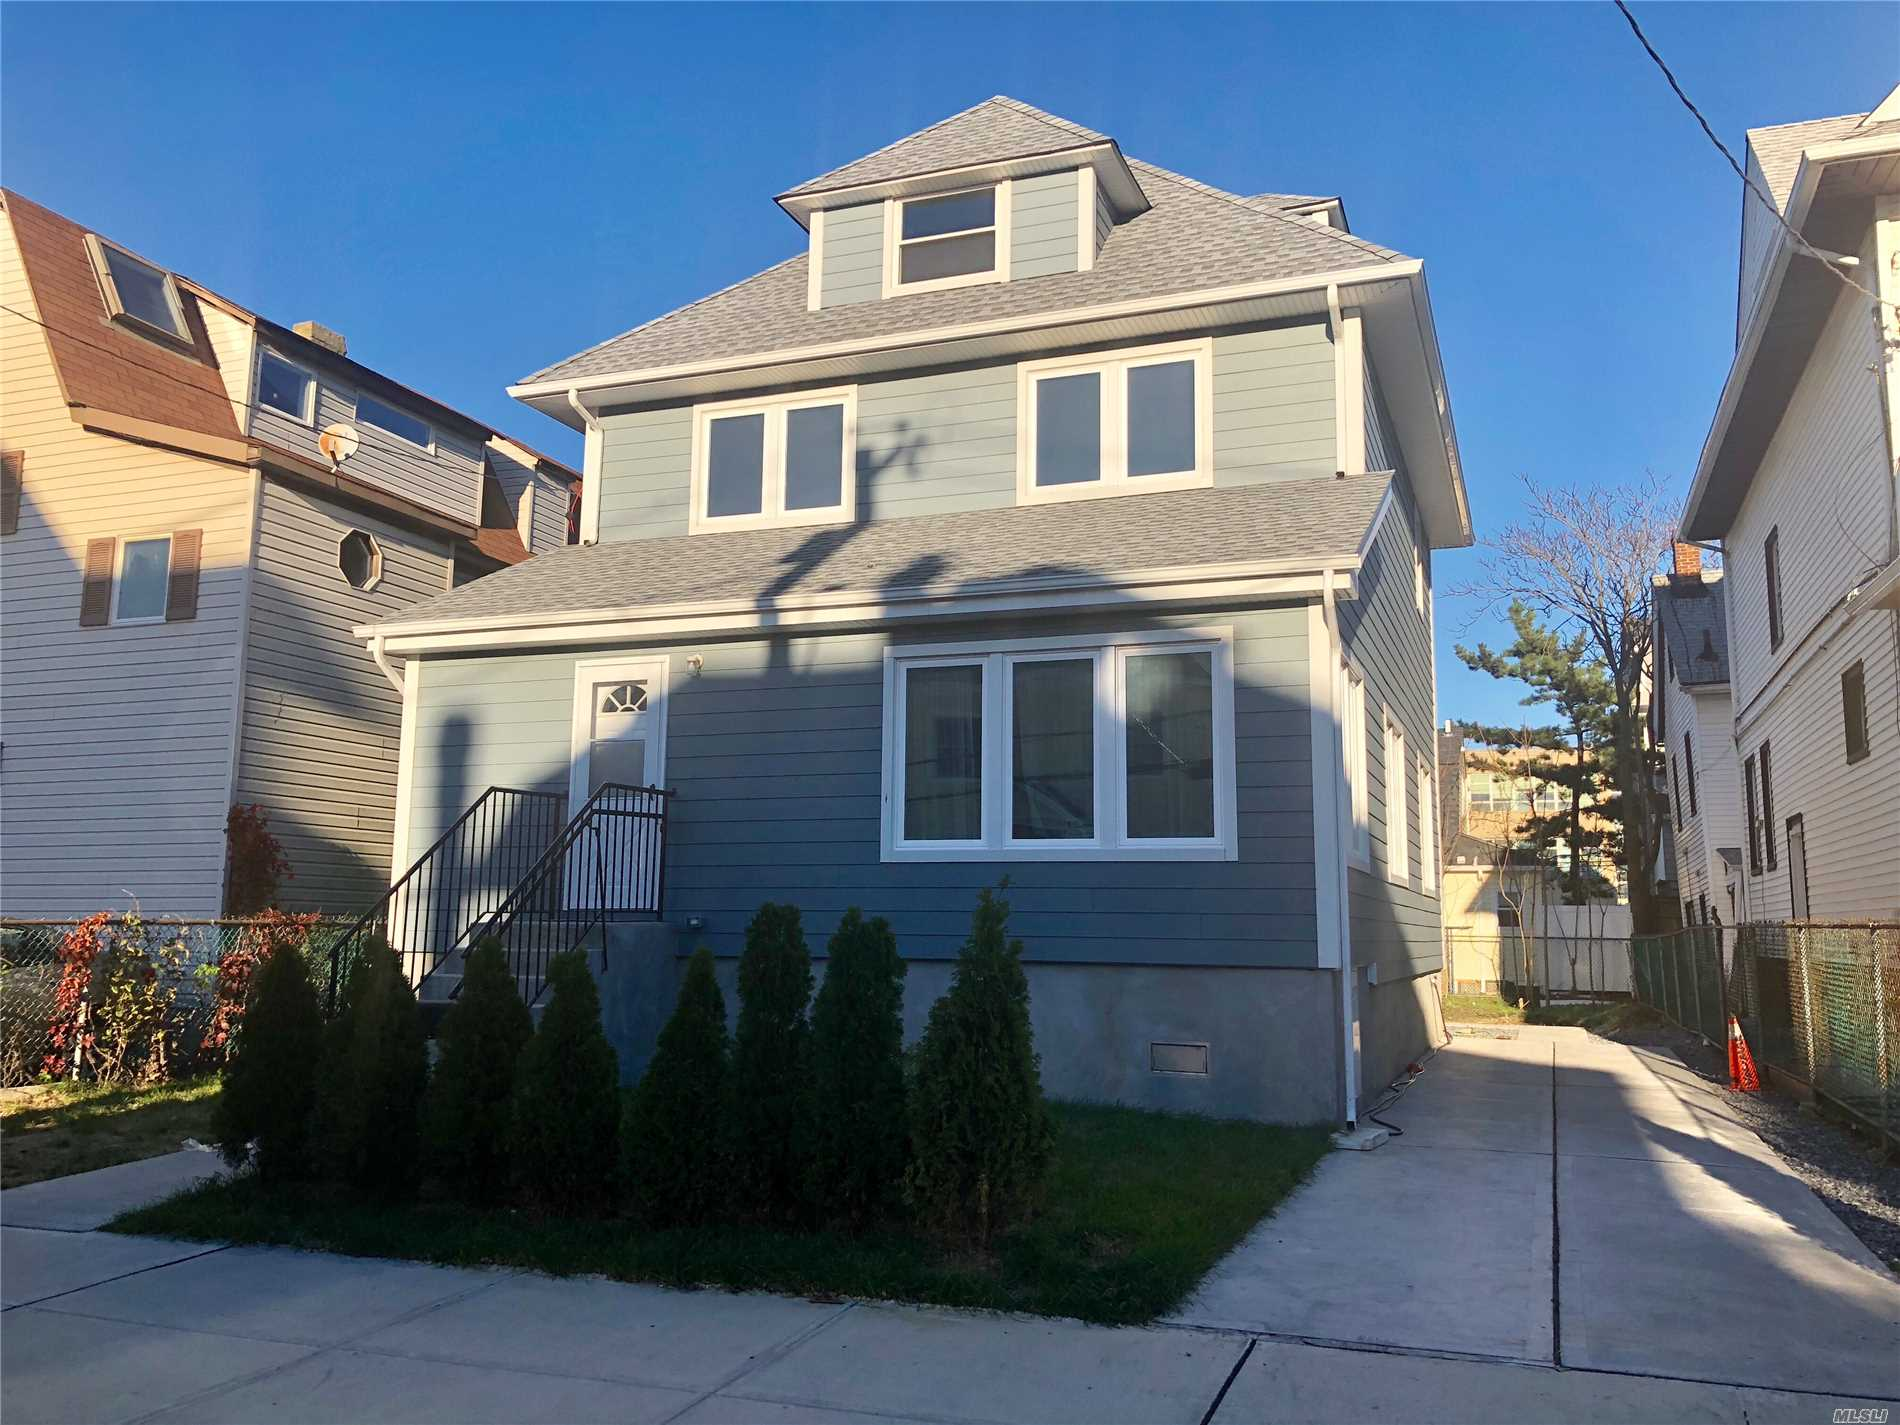 Two Story Apt In A 2 Family House Located On A Beach Block And Close To The A Train To Manhattan And Shopping.The Apartment Has 2 Floors The 3rd Floor Has A Open Space That Can Be Used As The 3rd Bedroom, Everthing Is New, Parking Available In The Driveway.